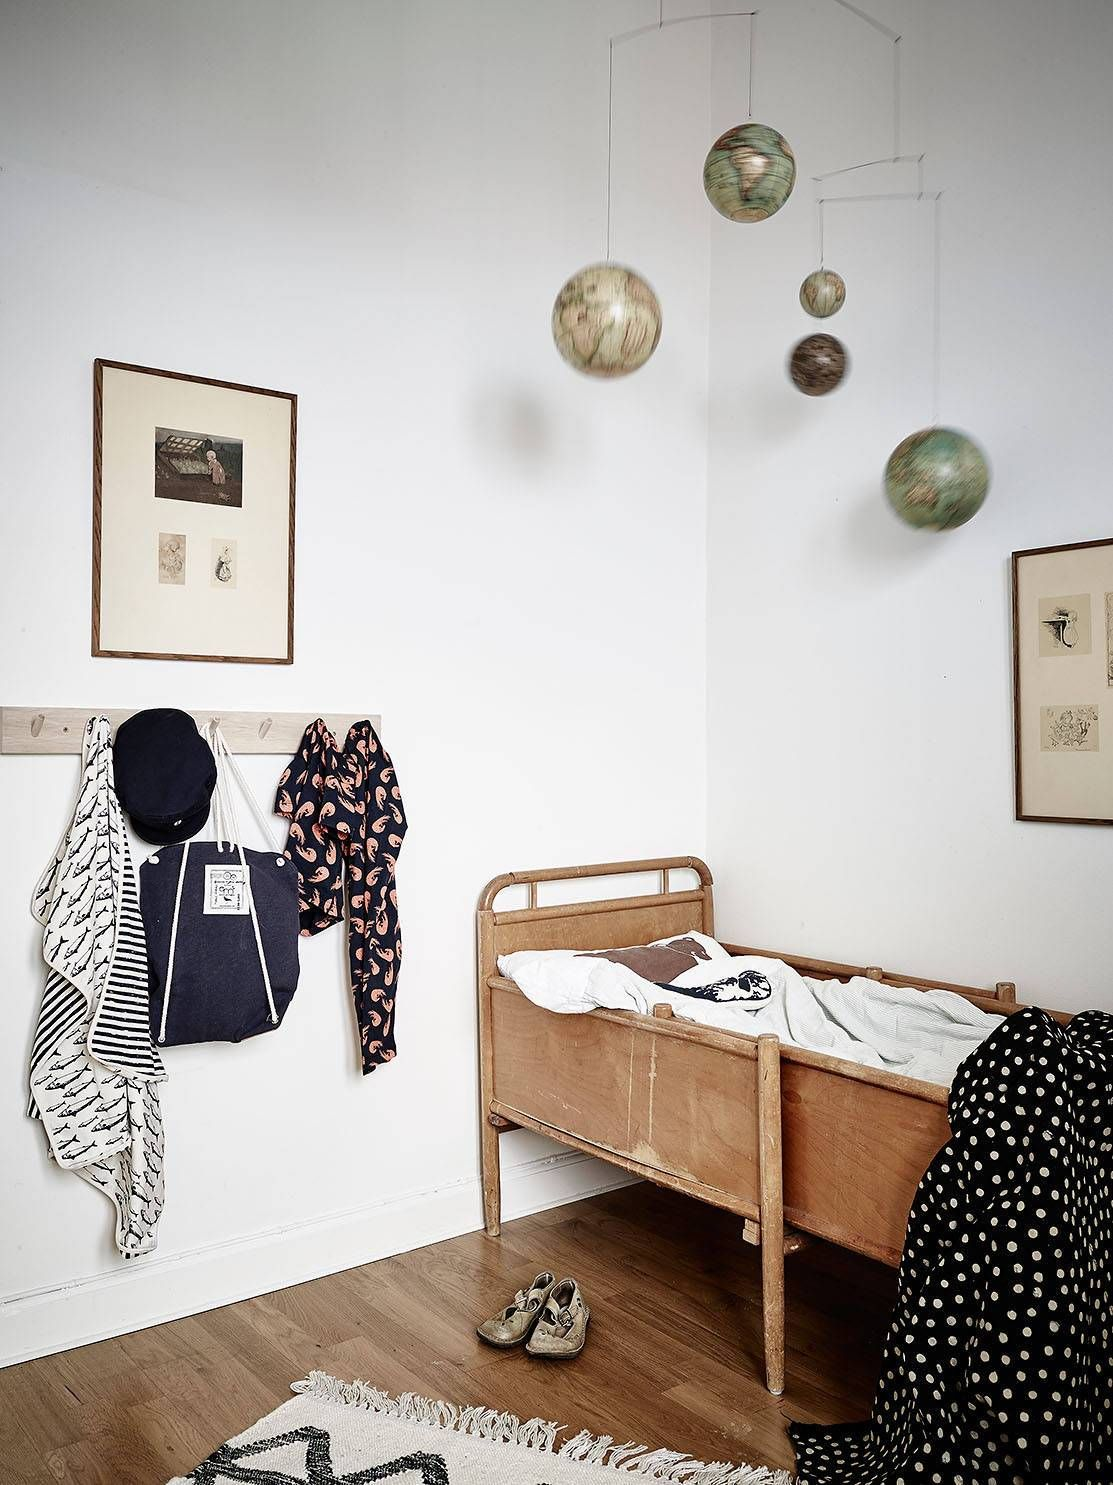 Kinderzimmer Buben Ideen Globes Above The Bed Such A Cool Kids Room Kleine